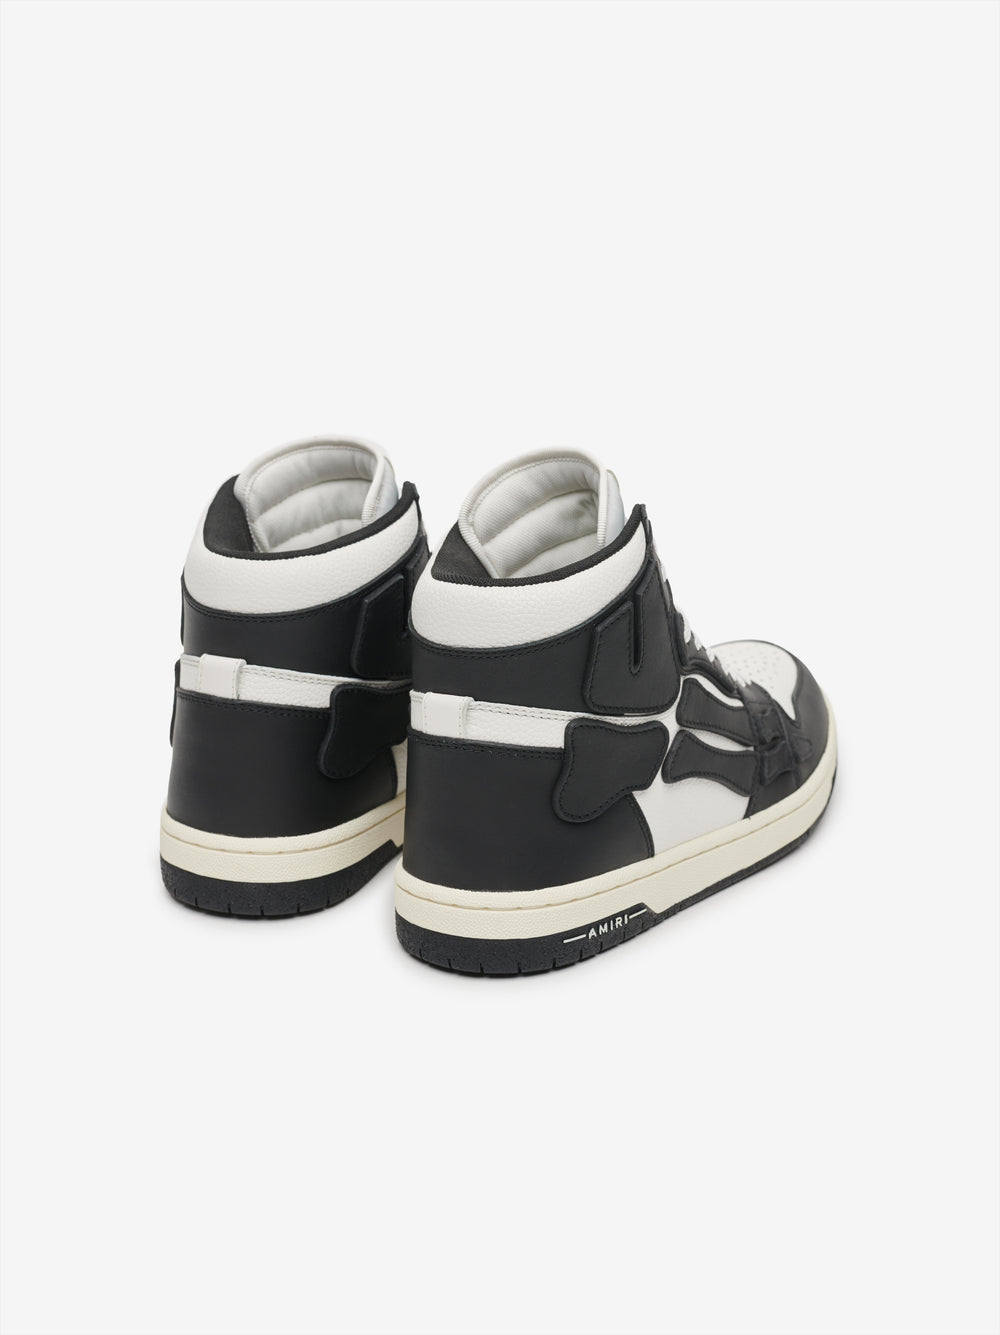 SKEL TOP HI - Black / White